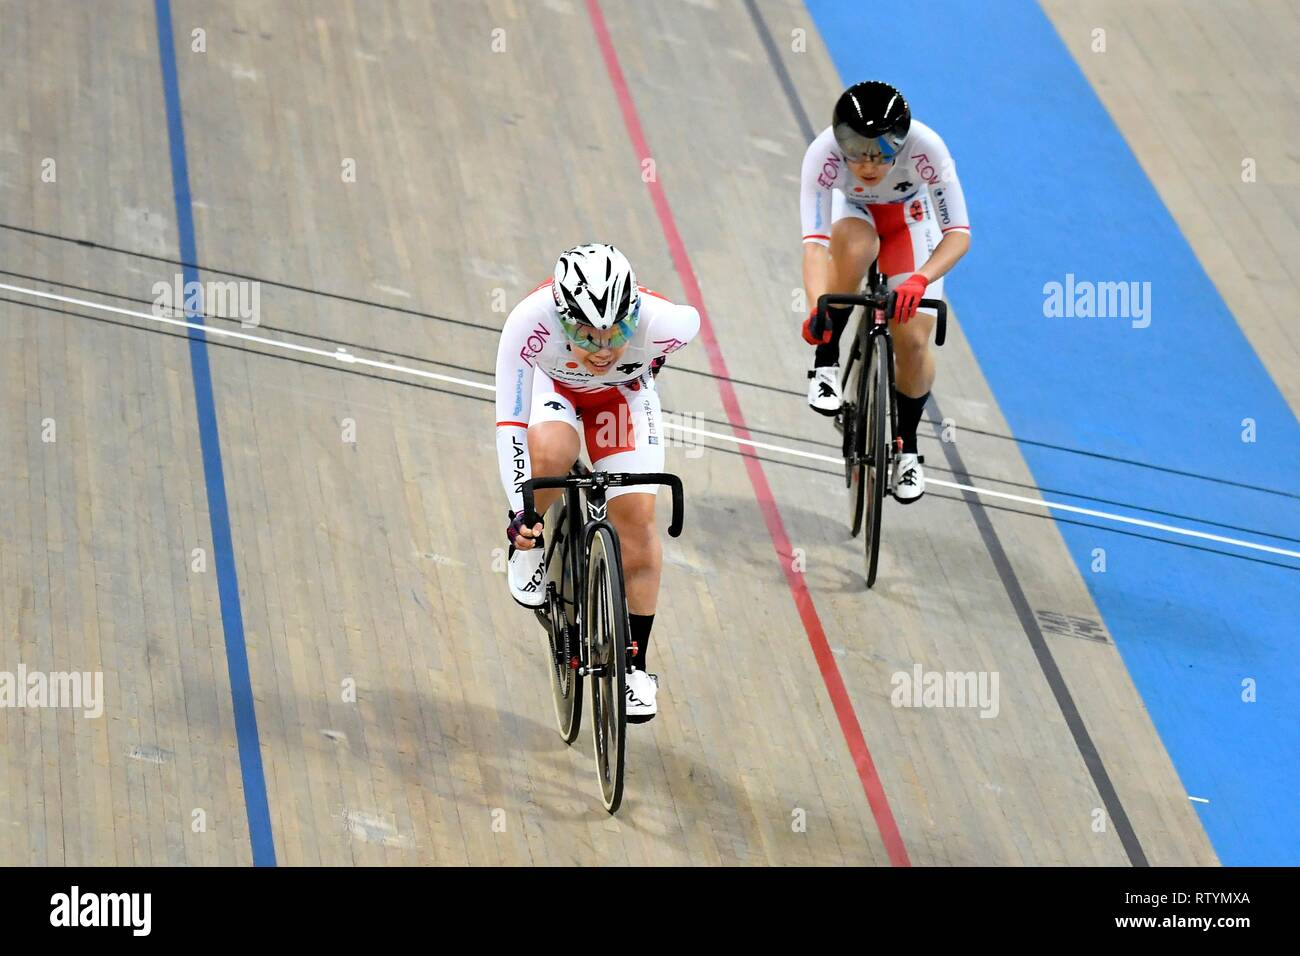 Track Cycling World Championships 2019 Uci On March 2 2019 At Bgz